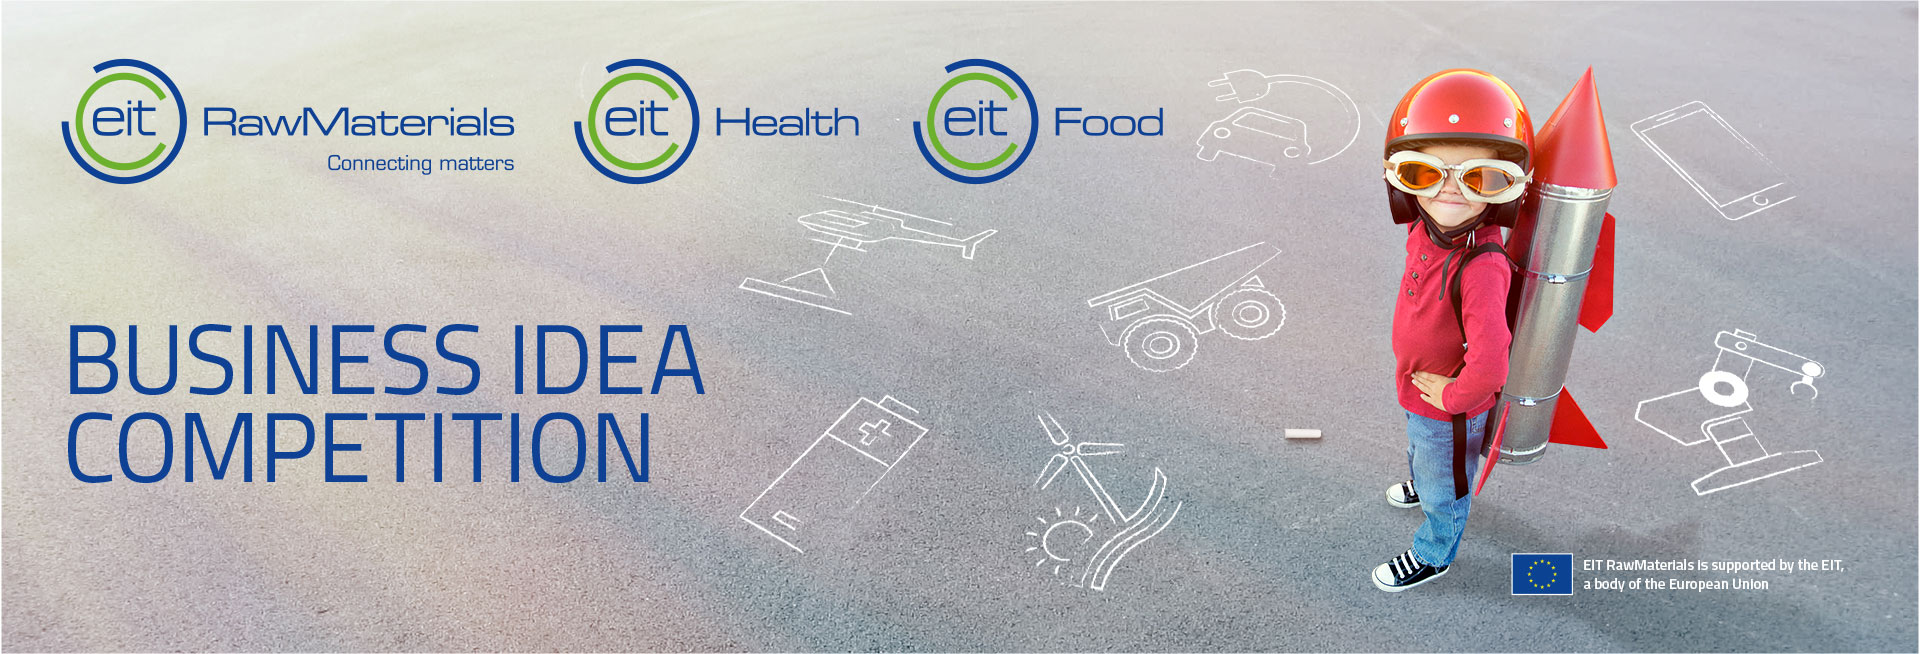 Business Idea Competition 2018 – EIT RawMaterials